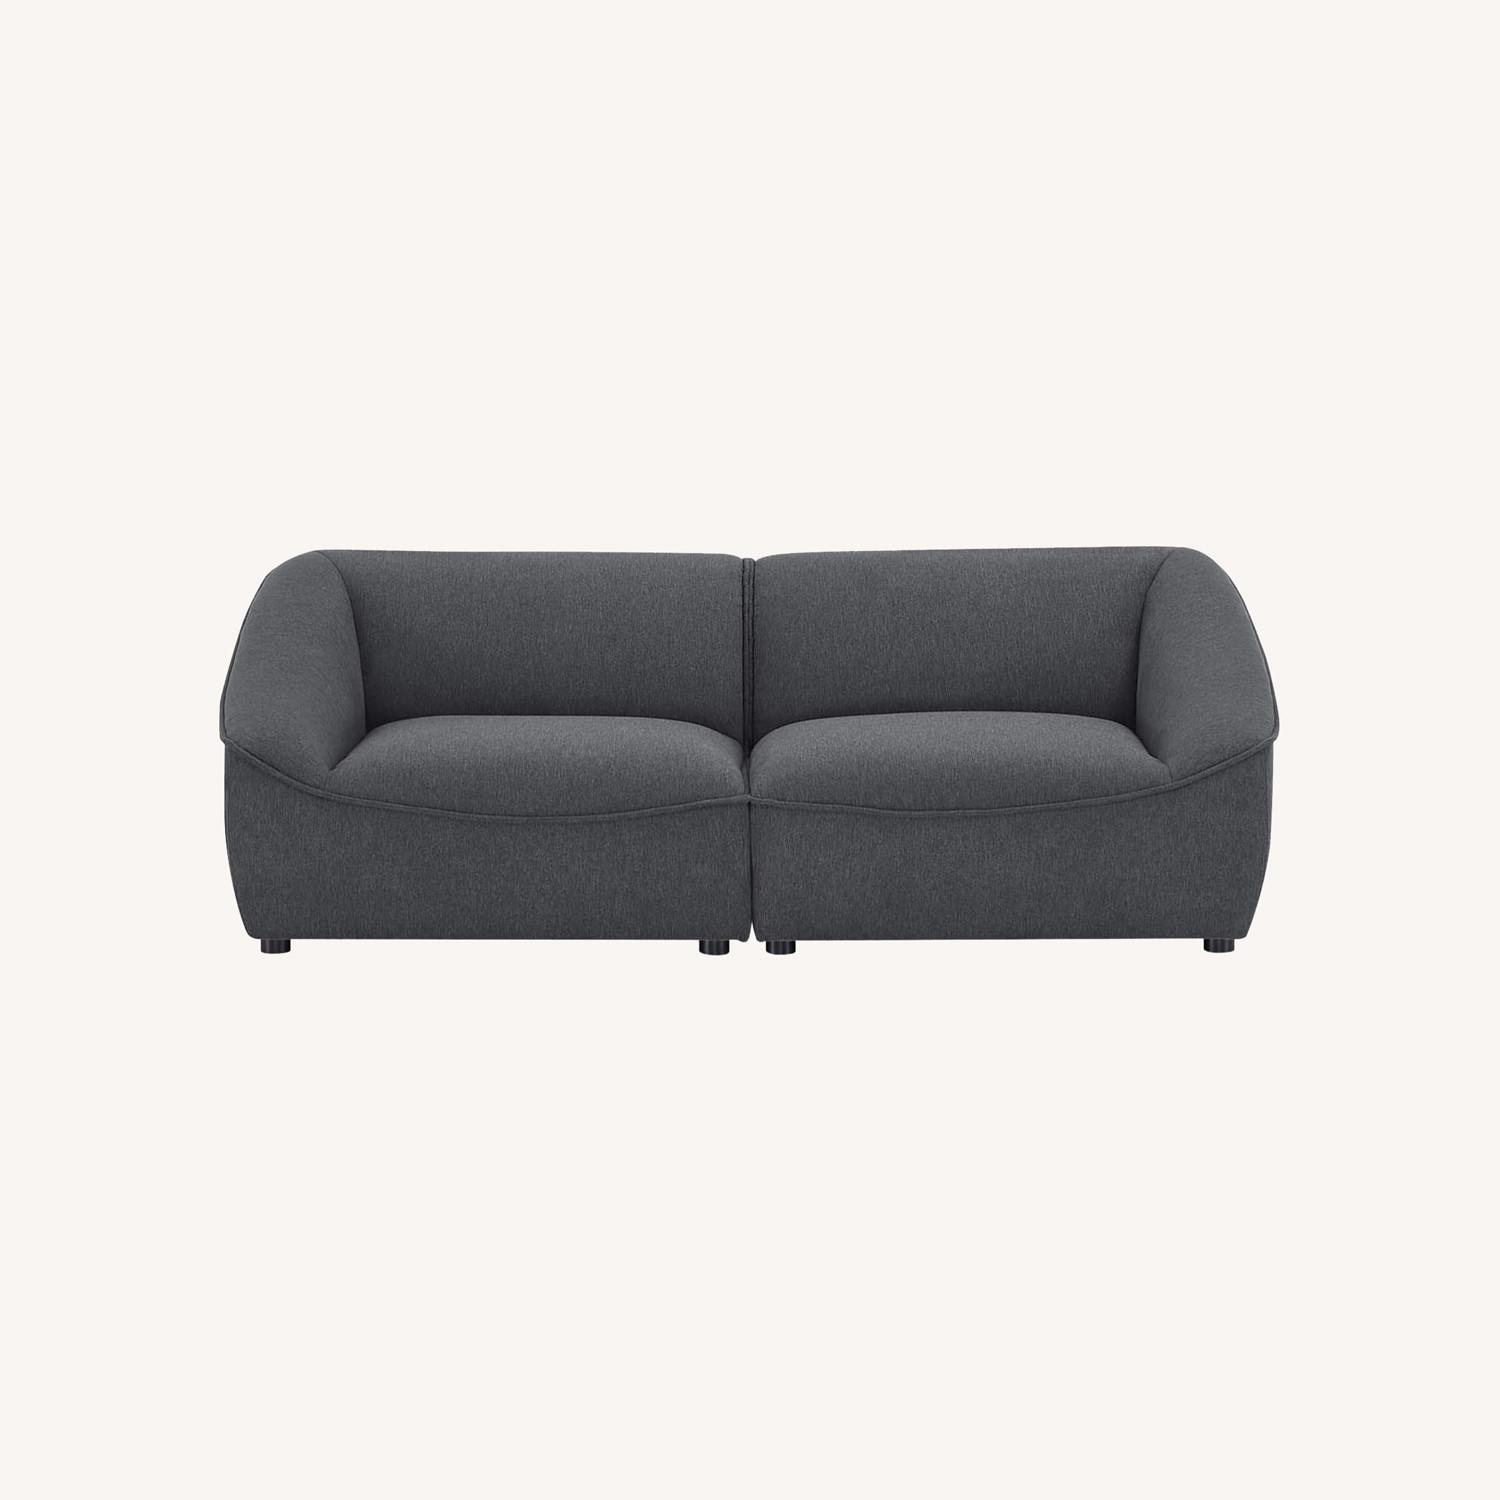 2-Piece Modern Loveseat In Charcoal Finish - image-9